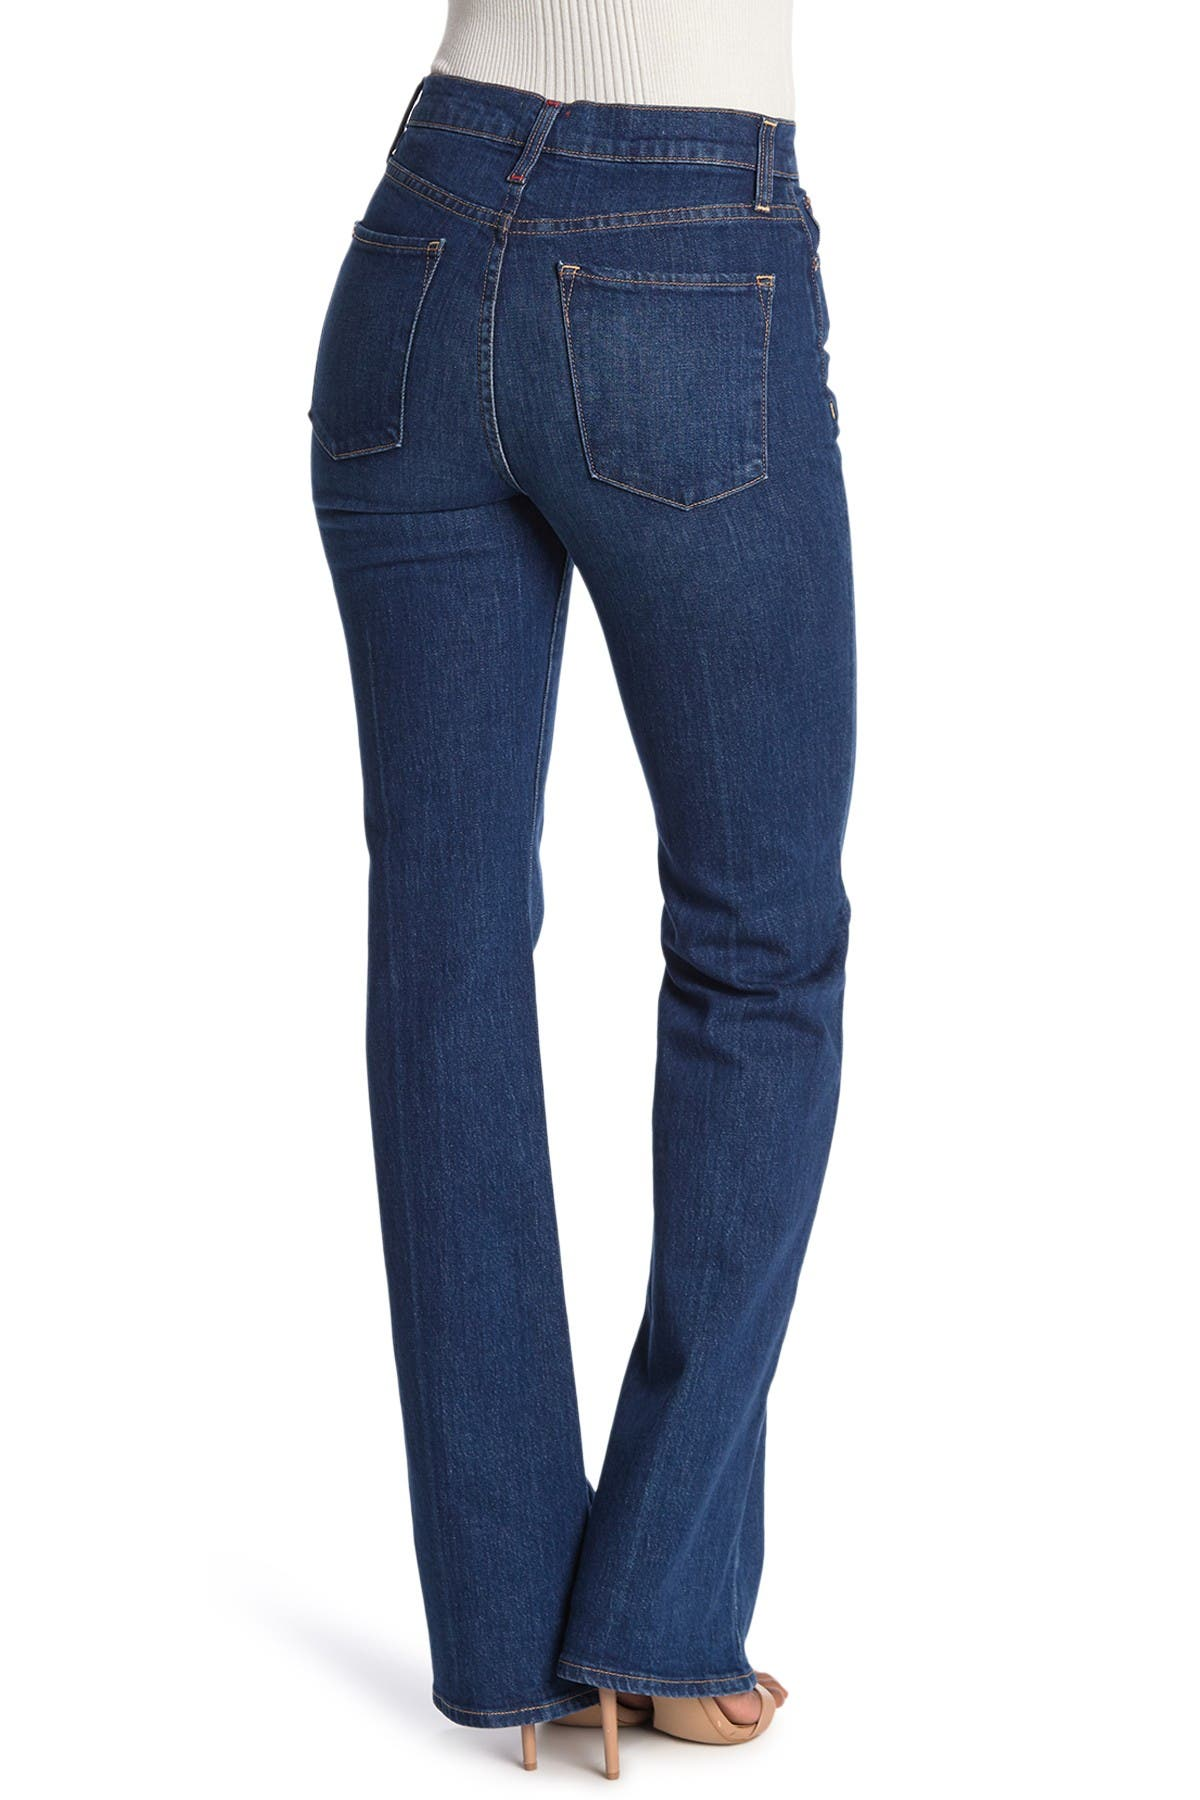 Image of alice + olivia Faublous 70's Bootcut Jeans